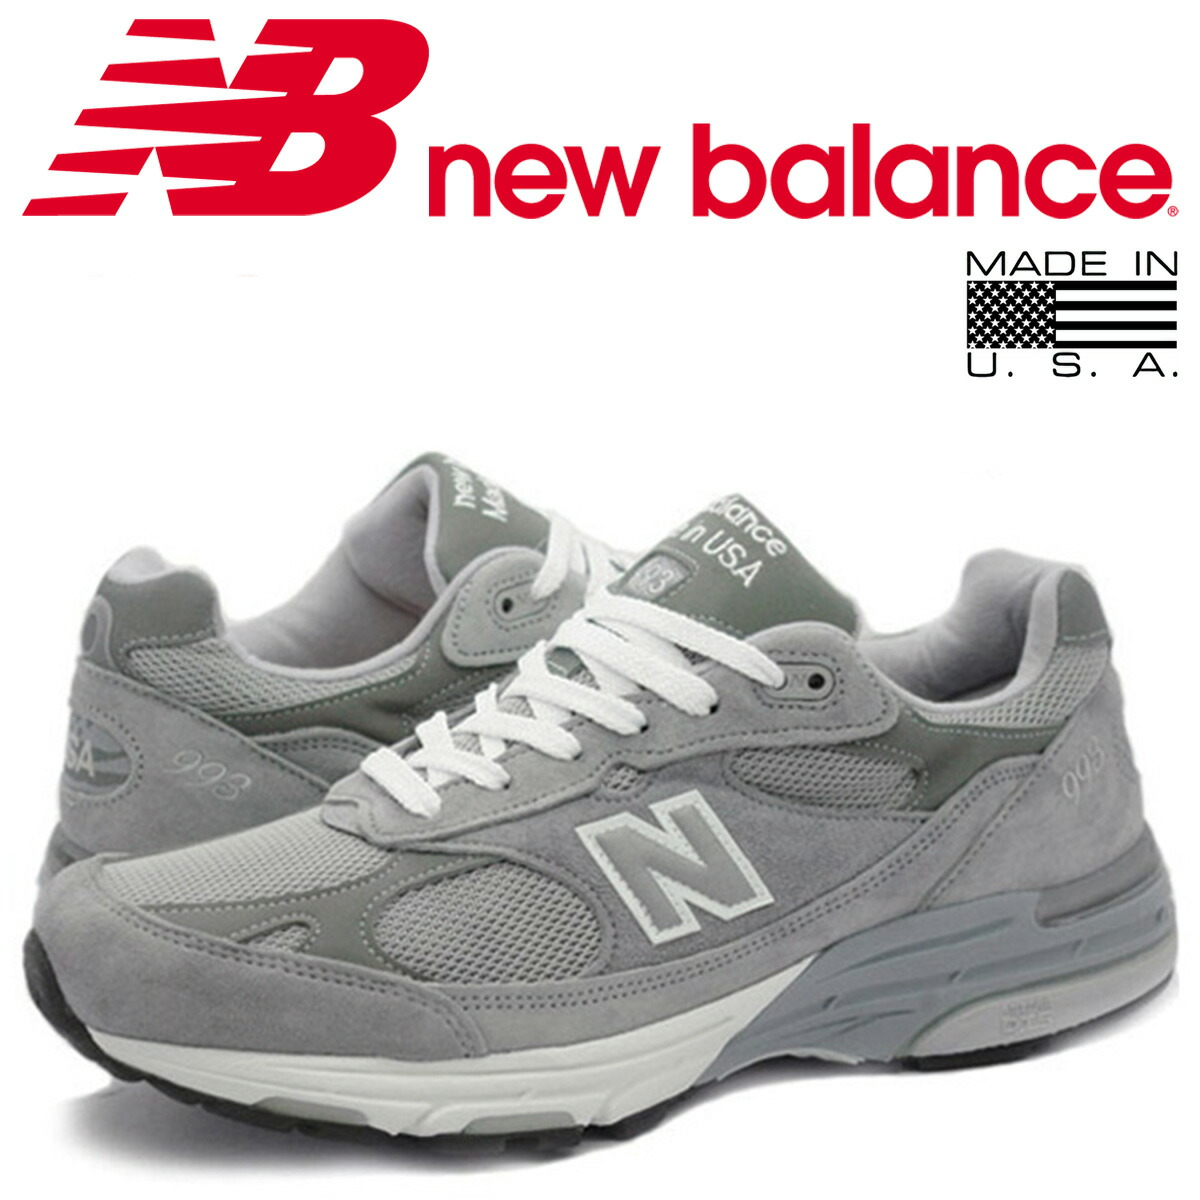 new balance MR993GL 993 men's New Balance sneakers D Wise MADE IN USA gray [the load planned additional arrival in reservation product 110